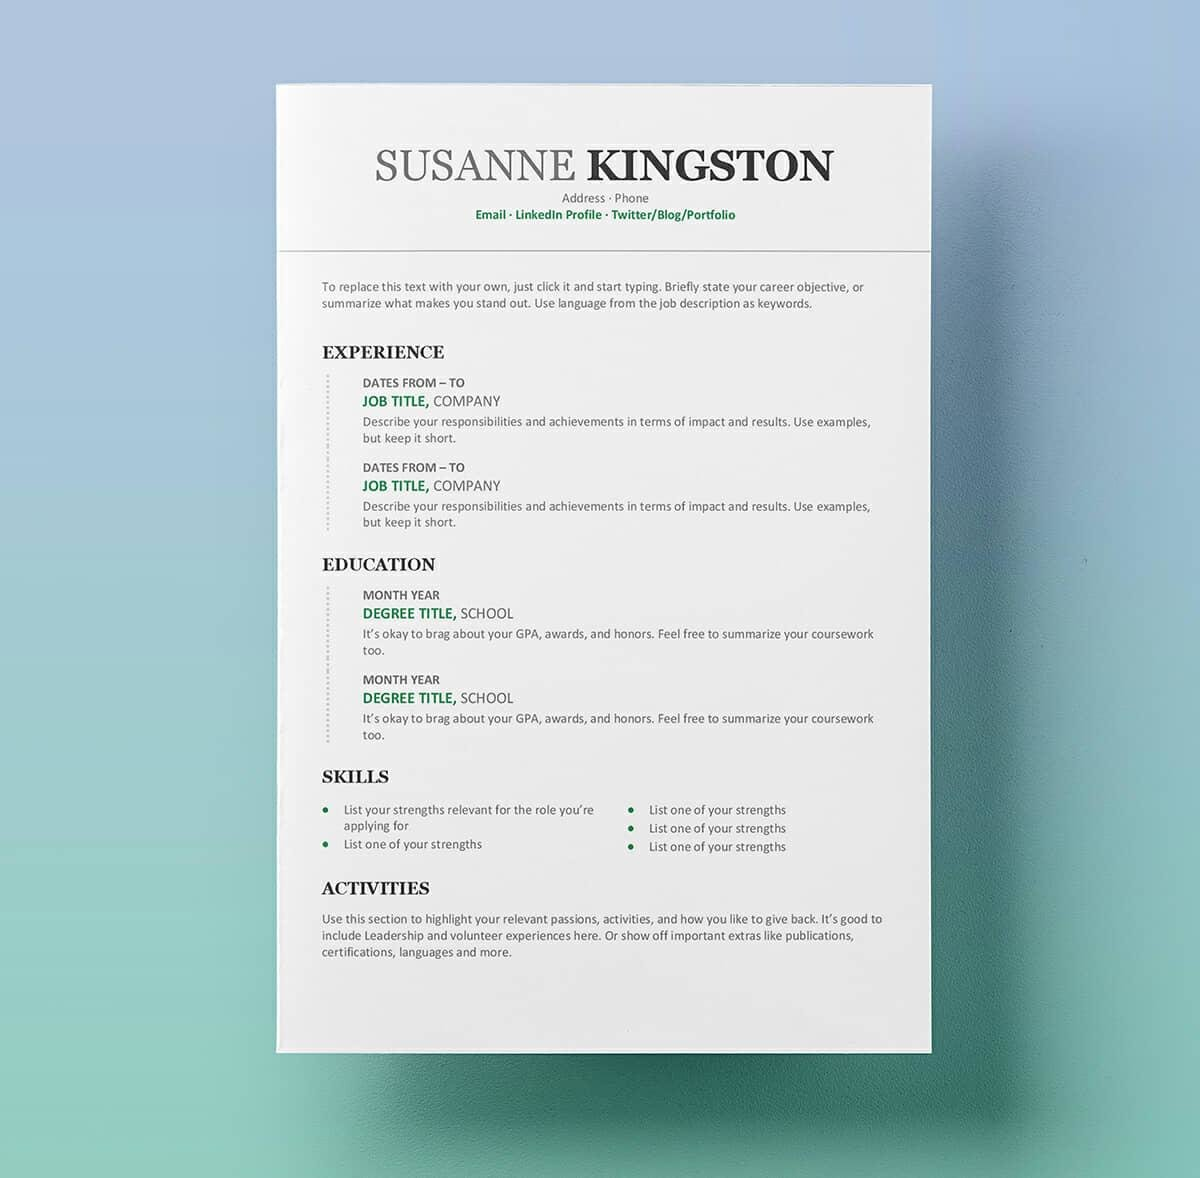 Resume templates for word free 15 examples for download for How to create a cv template in word